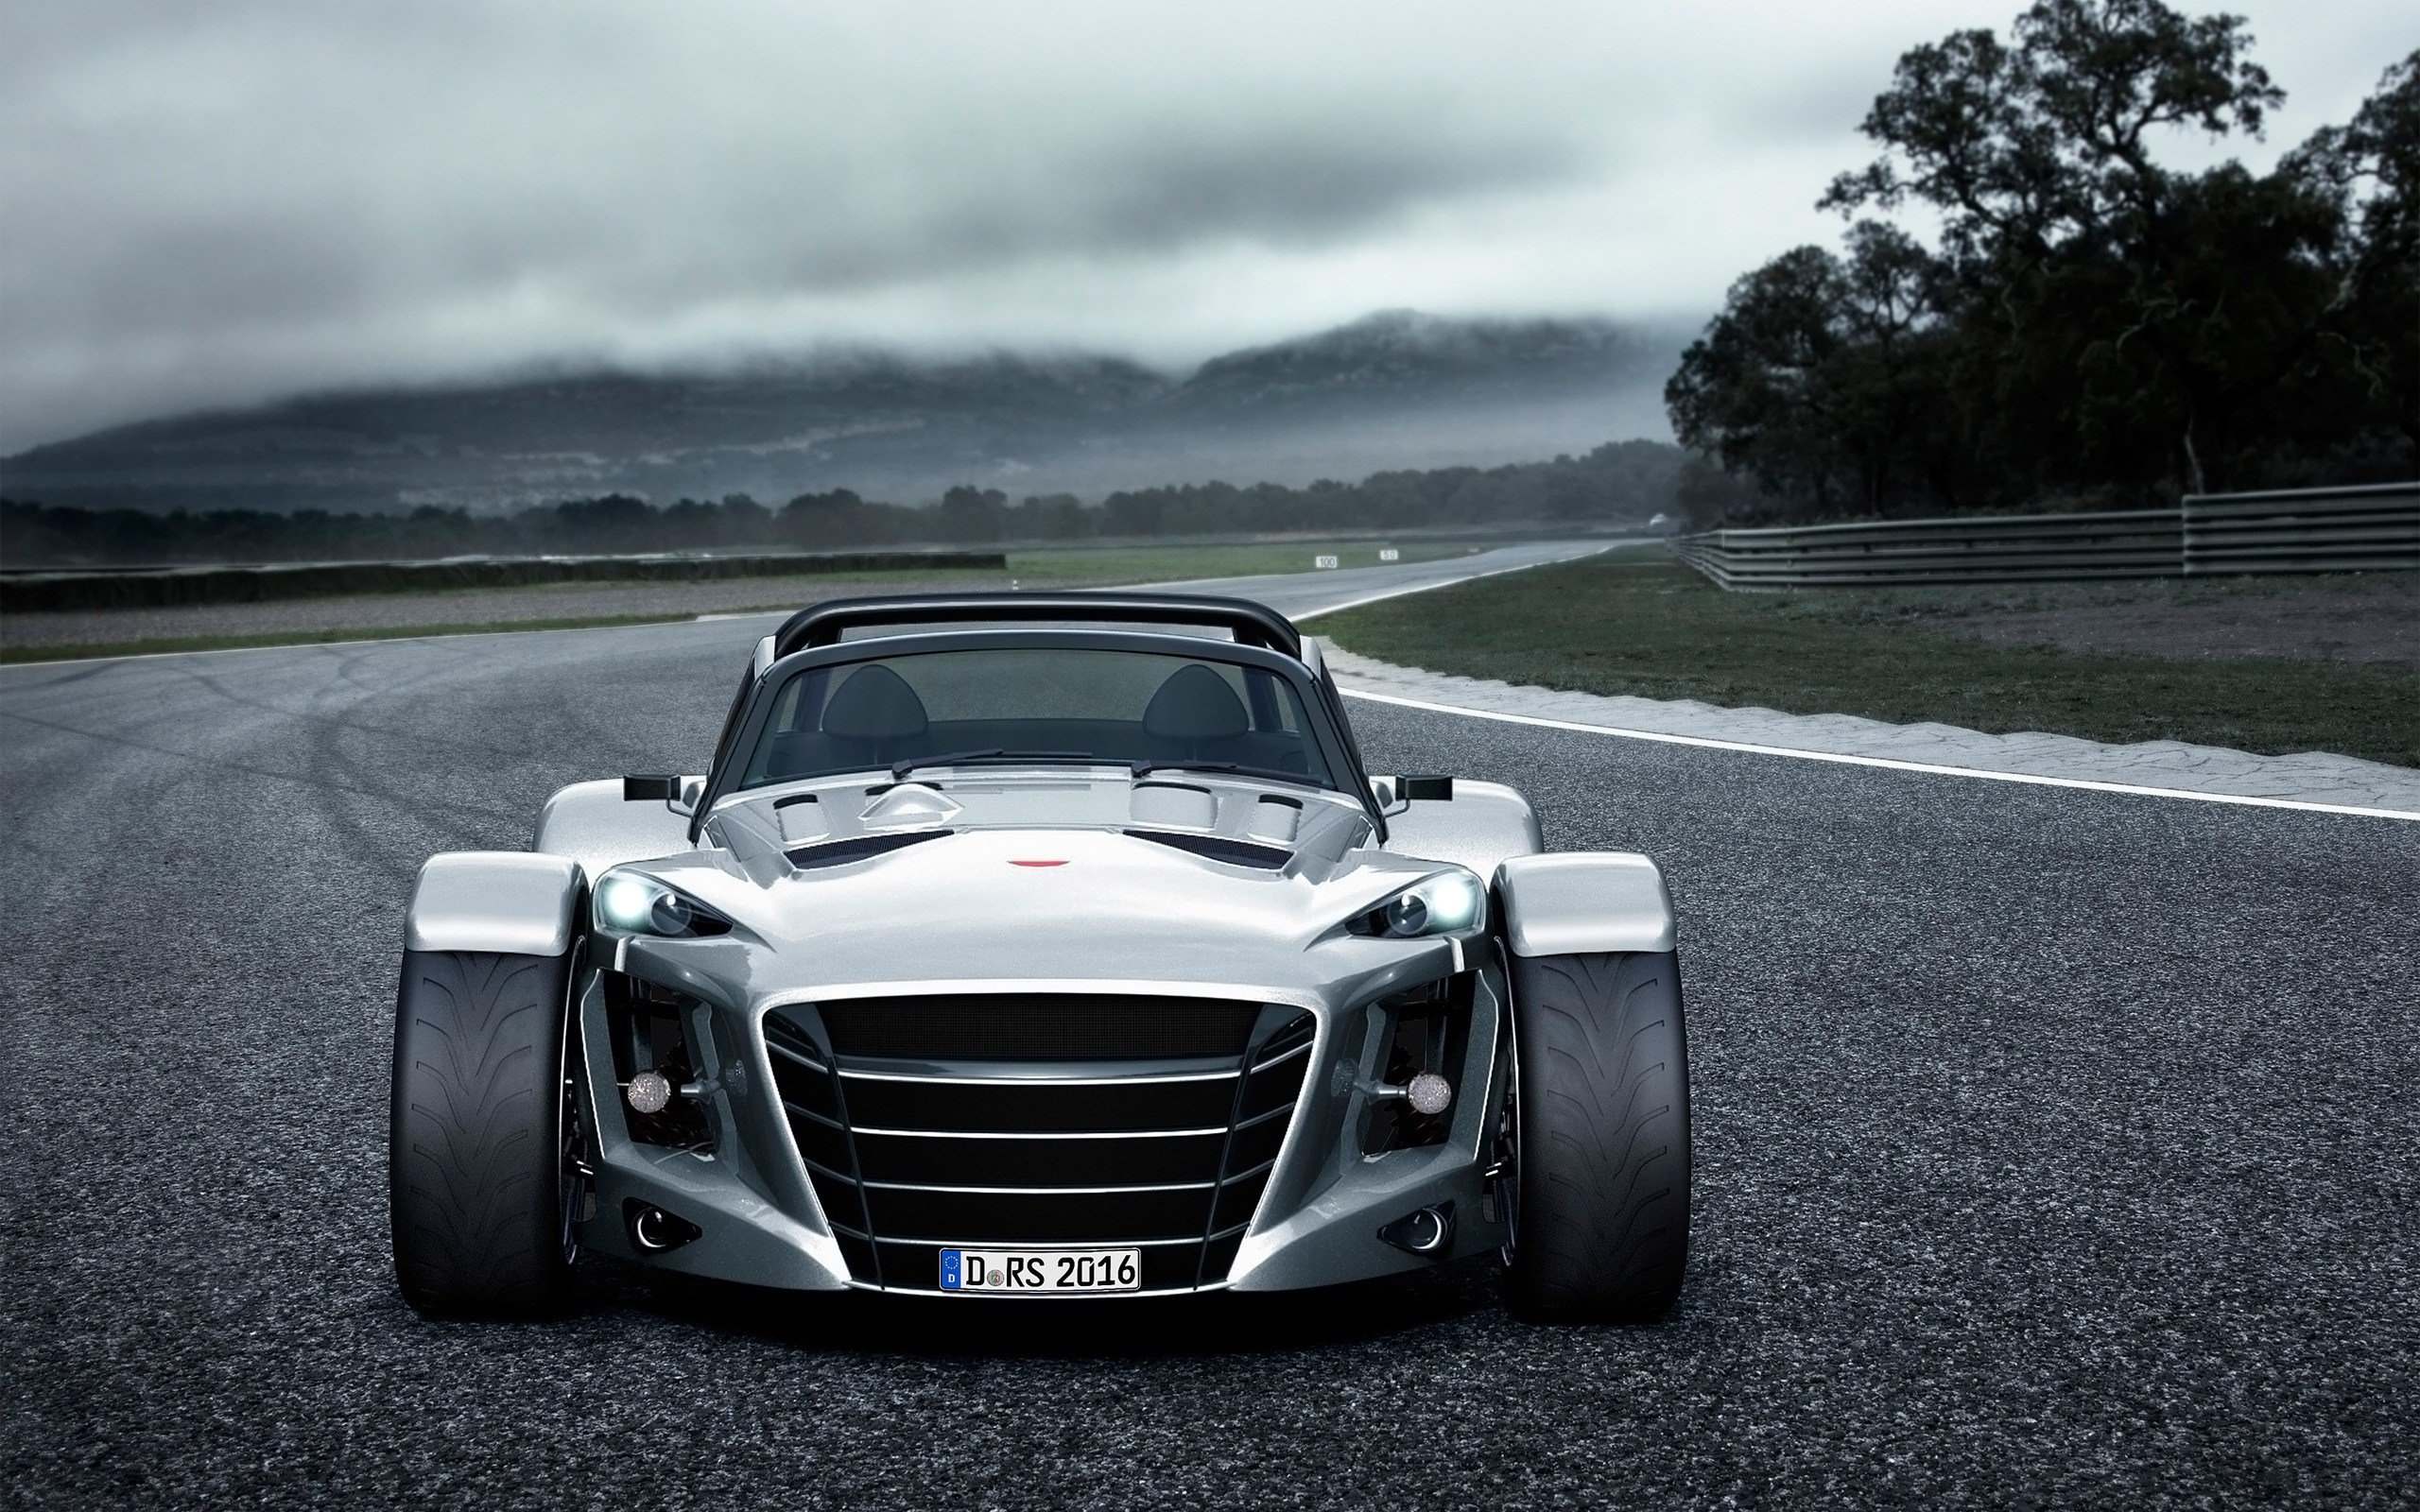 New 2017 Donkervoort D8 Gto Rs Wallpaper Hd Car Wallpapers On This Month